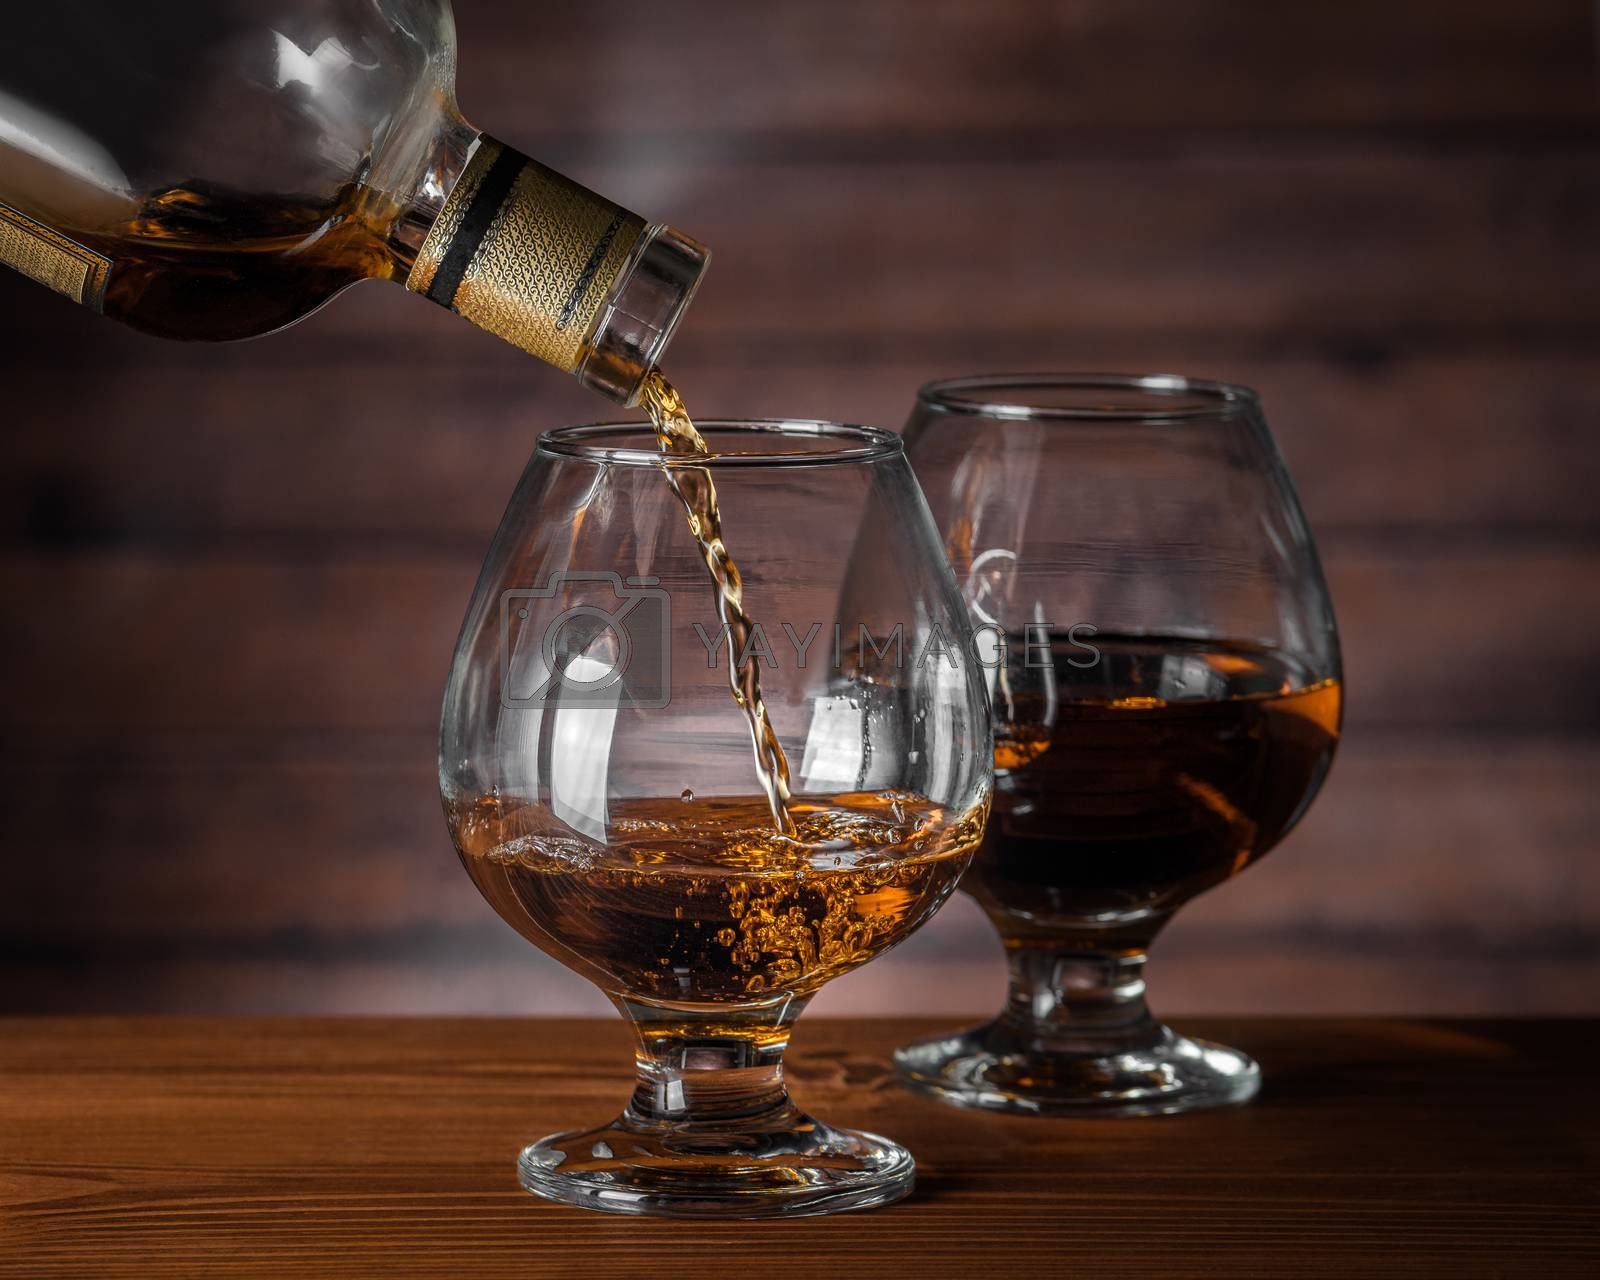 Royalty free image of Cognac is poured from a bottle by VladimirZubkov